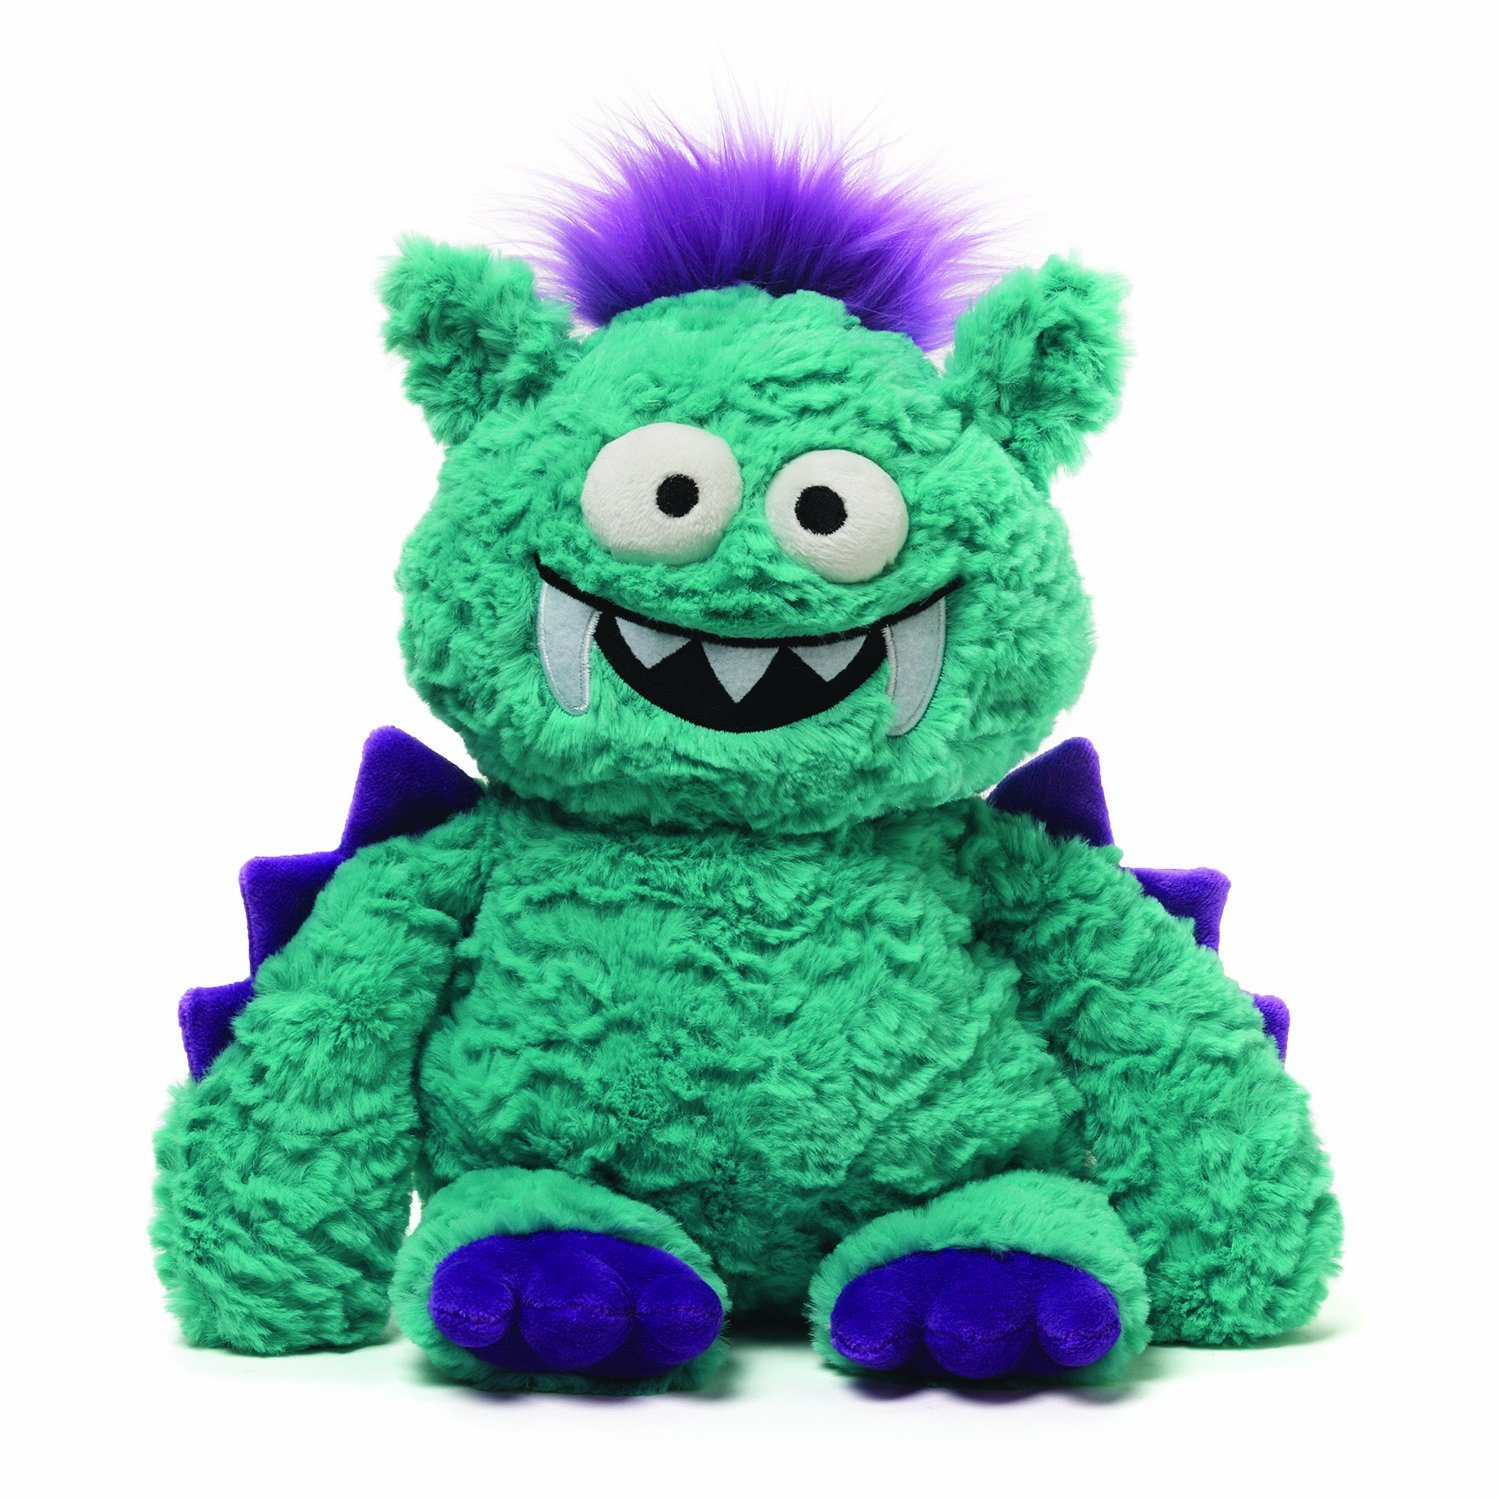 Cuddly Lusca Monster  - Fully Customisable Plush